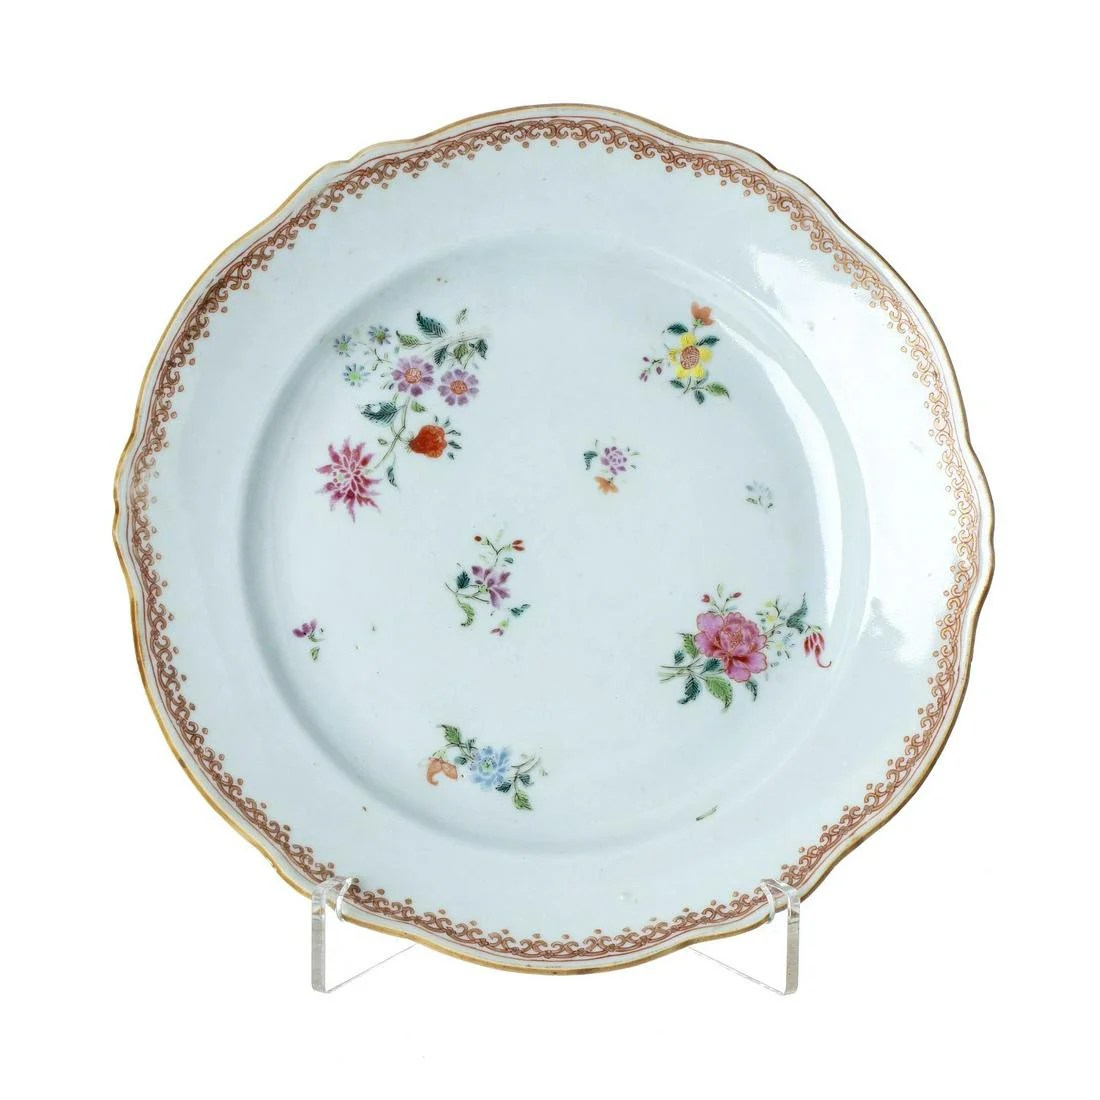 Chinese famille-rose plate, Qianlong